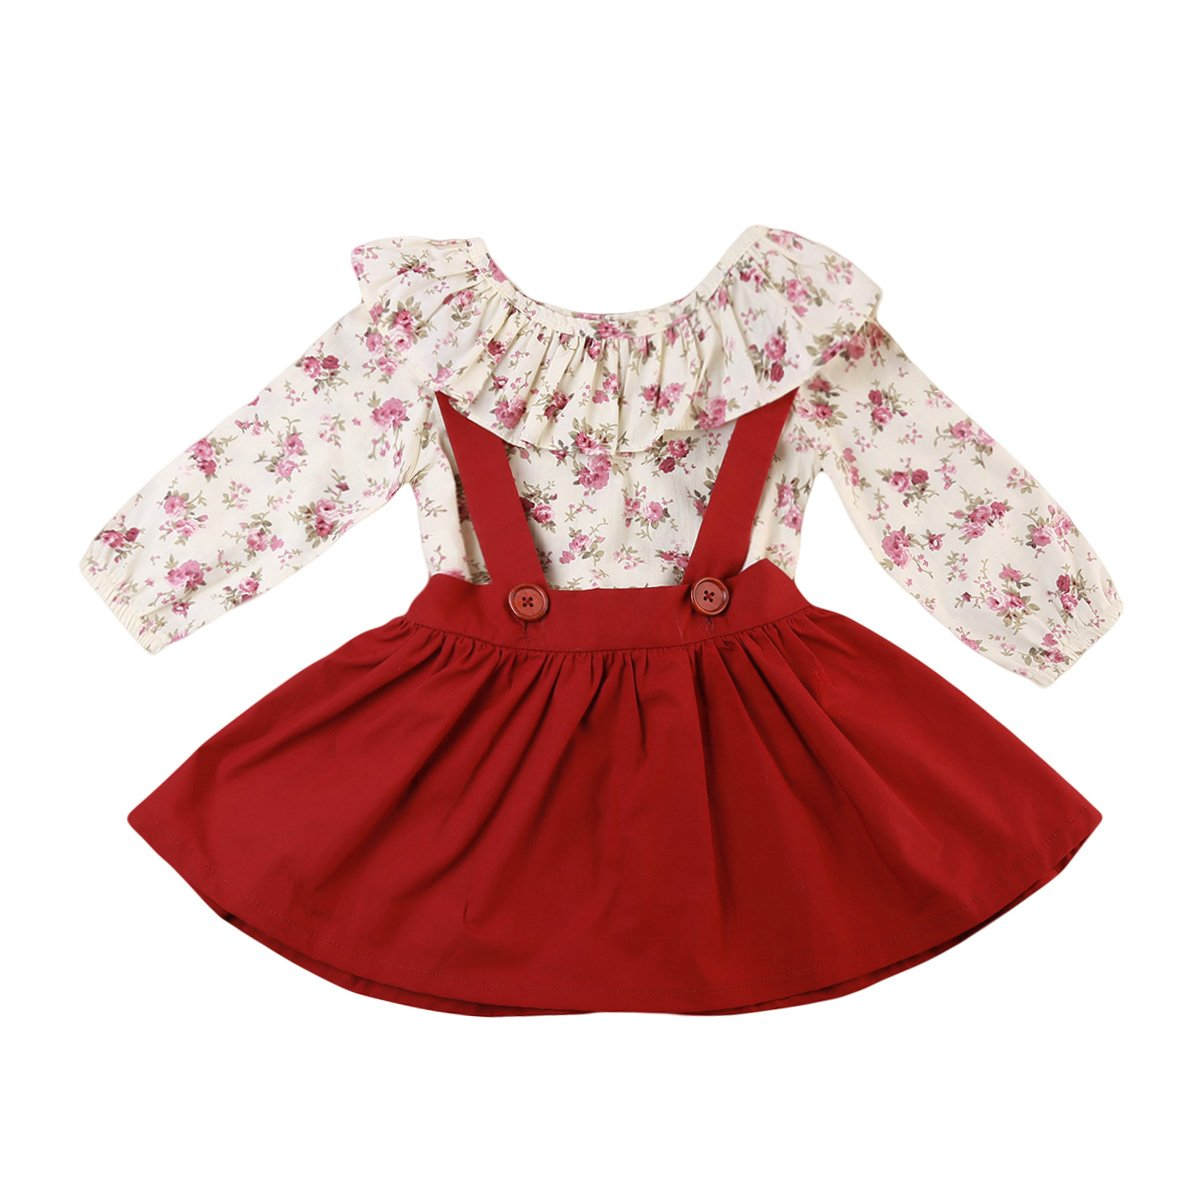 2 Pcs Elsie Suspender Dress With Floral Top 12M-5